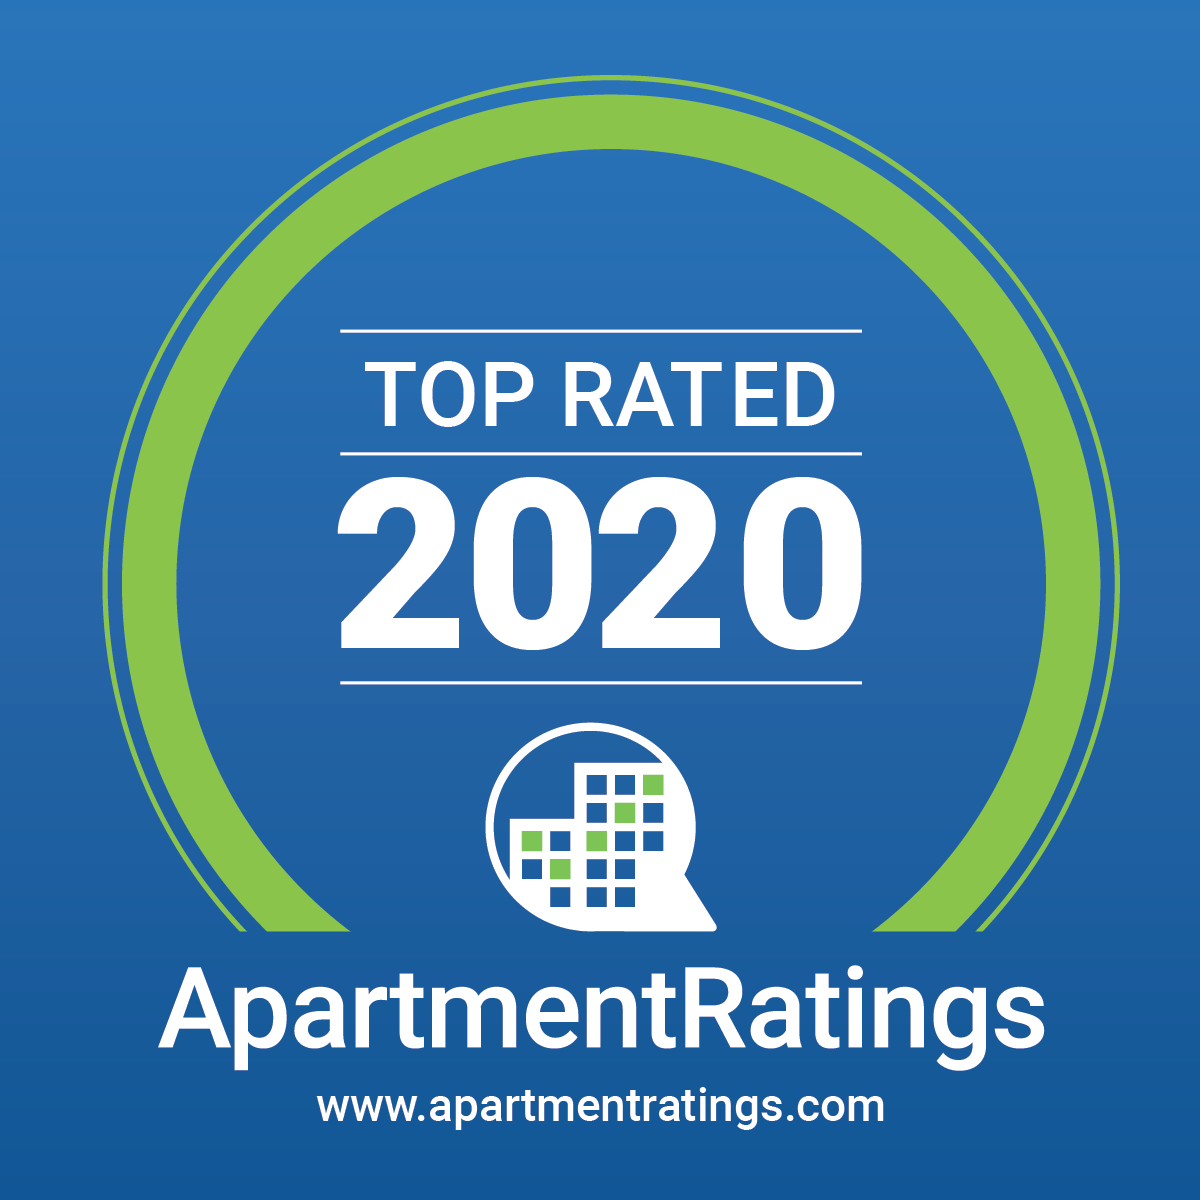 apartmentratings 2020 award image